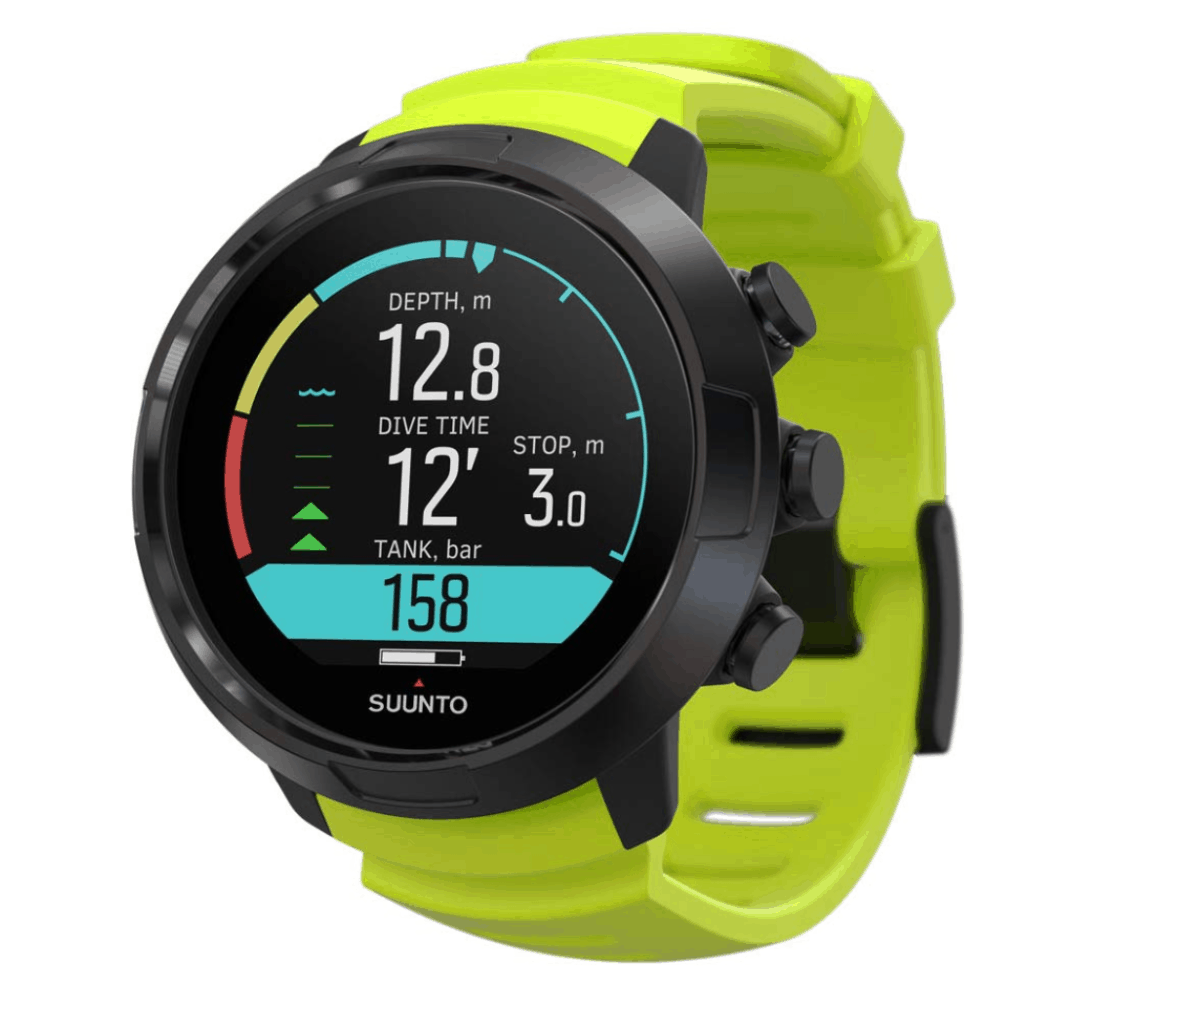 Suunto Dive Computers - Reviews & Buyers Guide for 2020